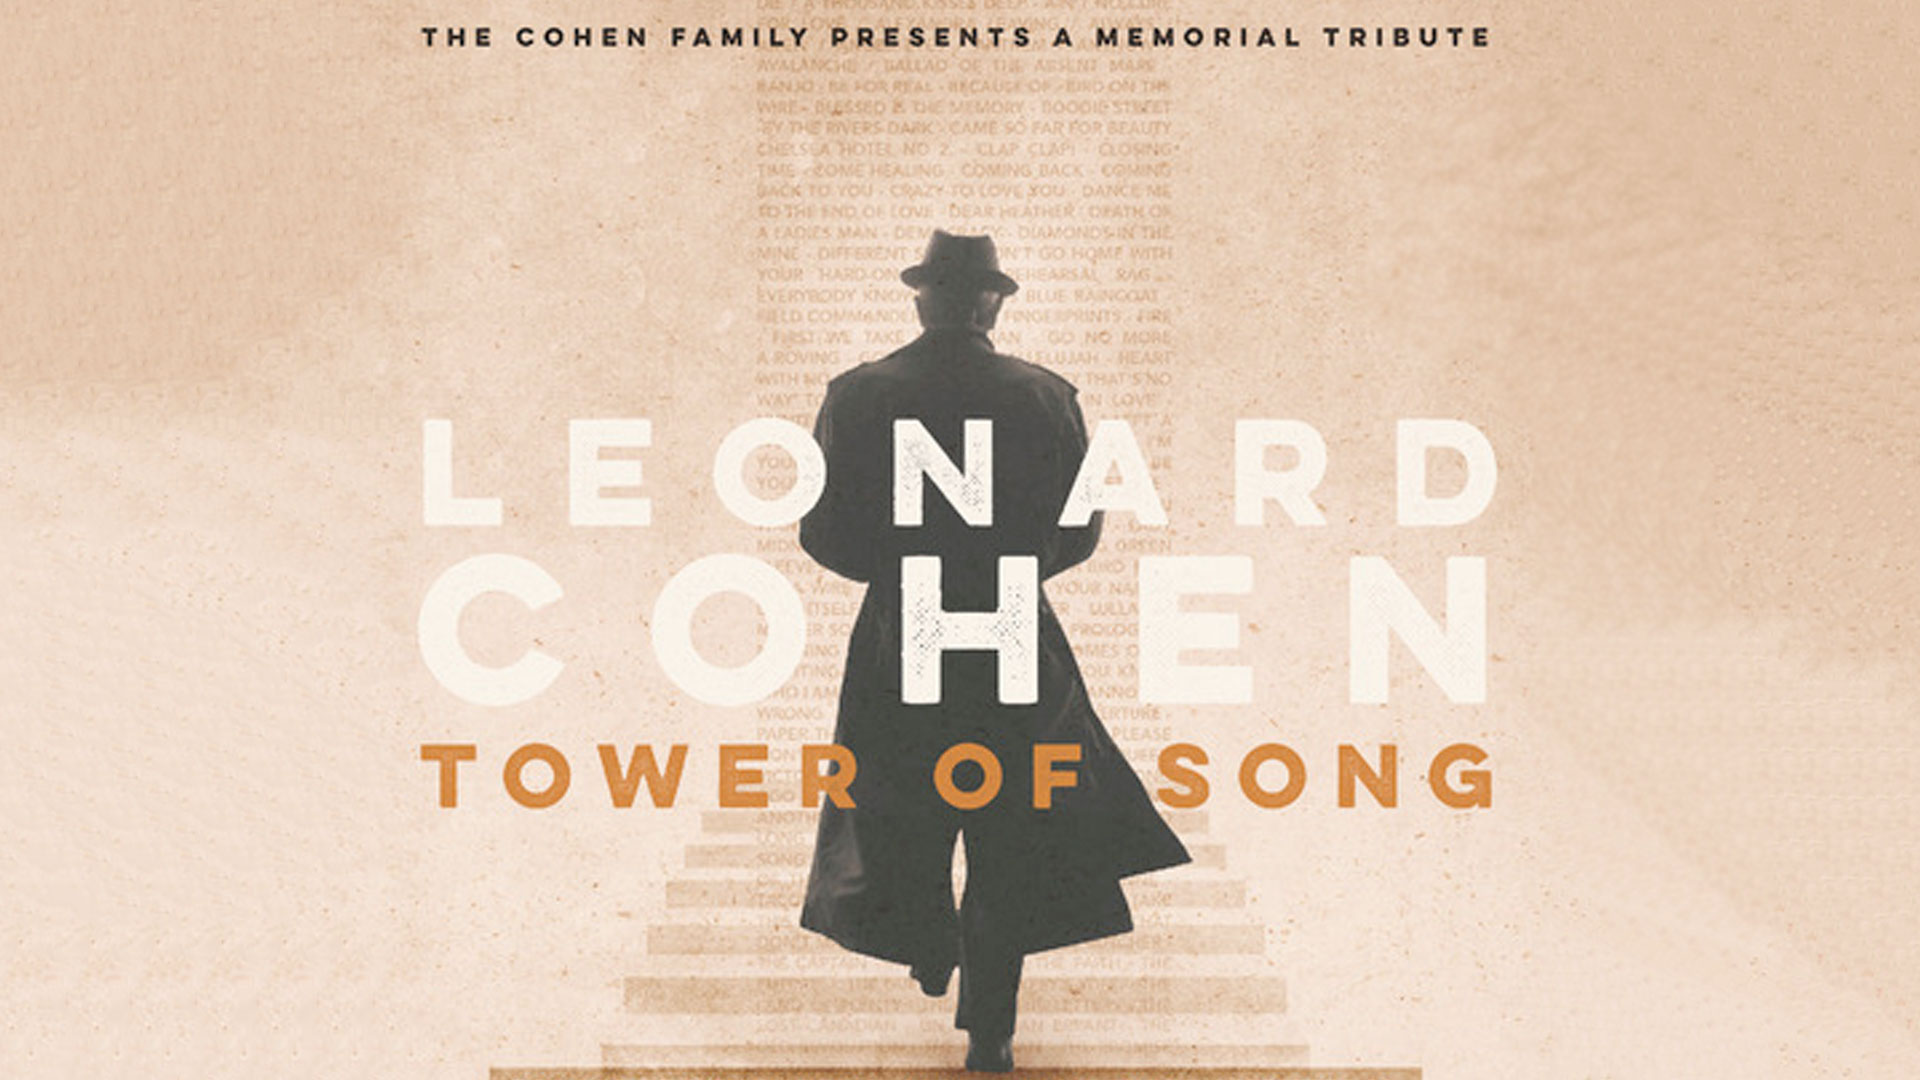 leonard_cohen_songs_dvd_cover_hero